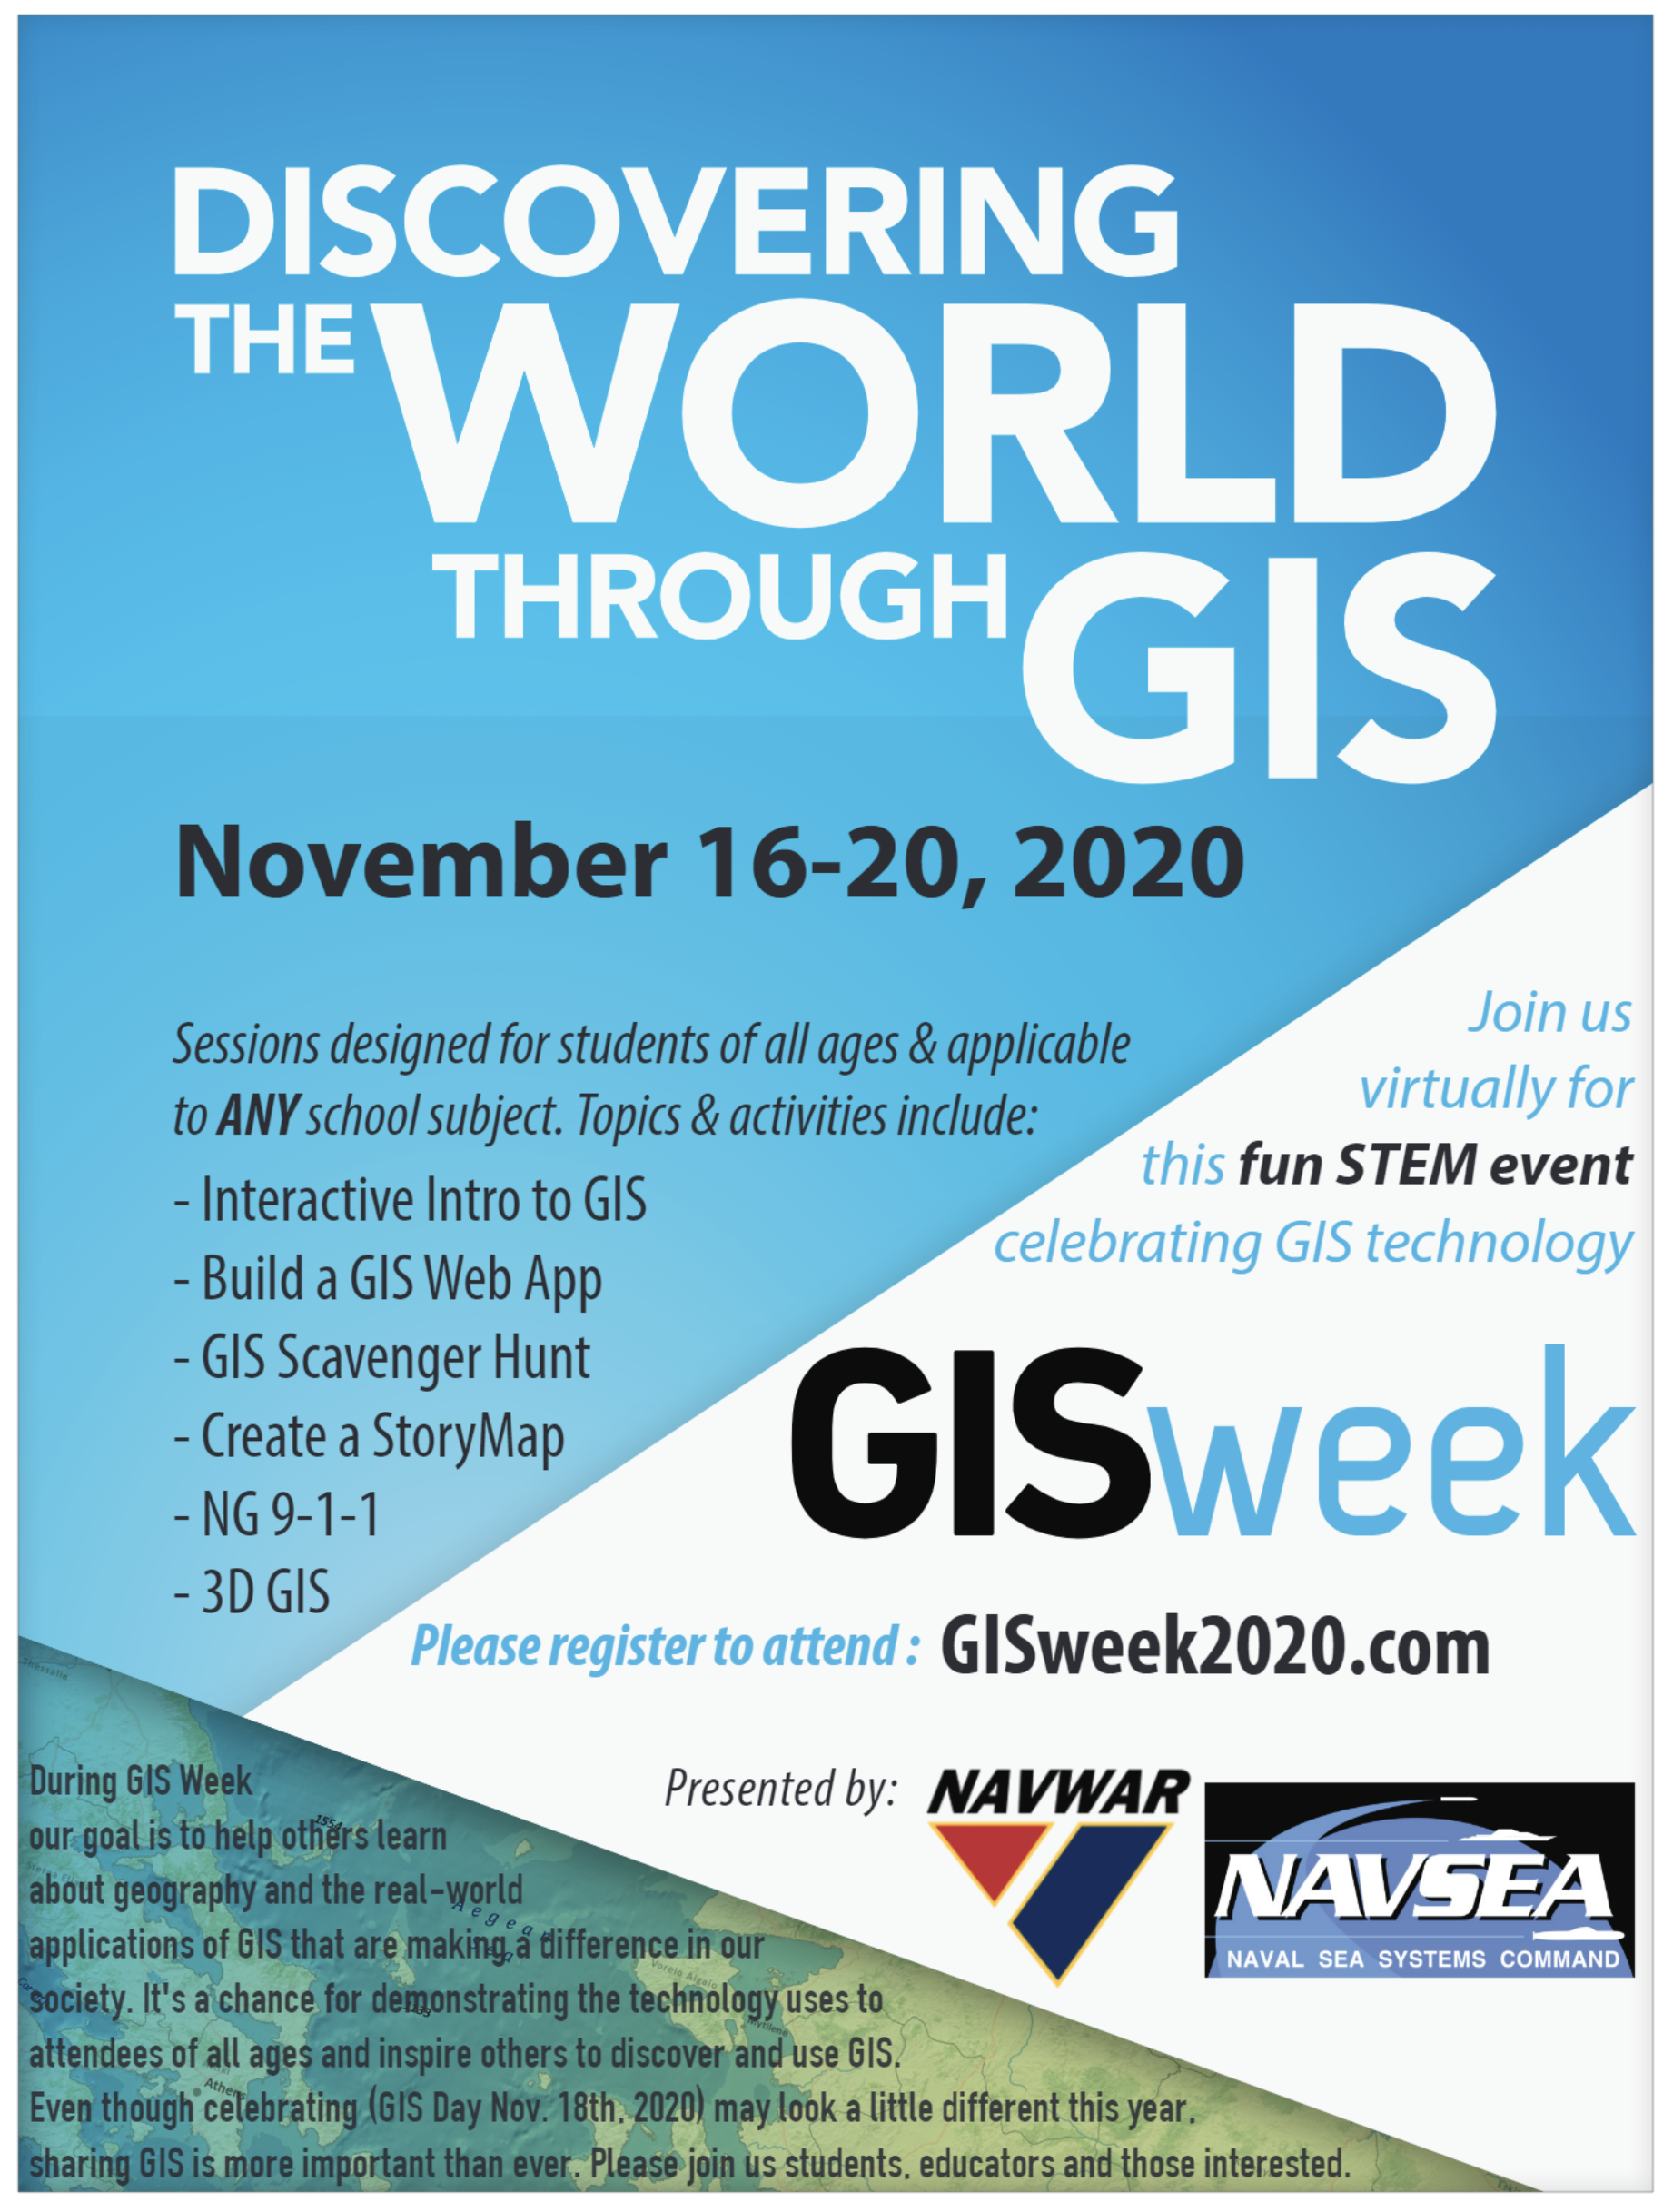 Discovering the World through GIS flyer (see description for details)